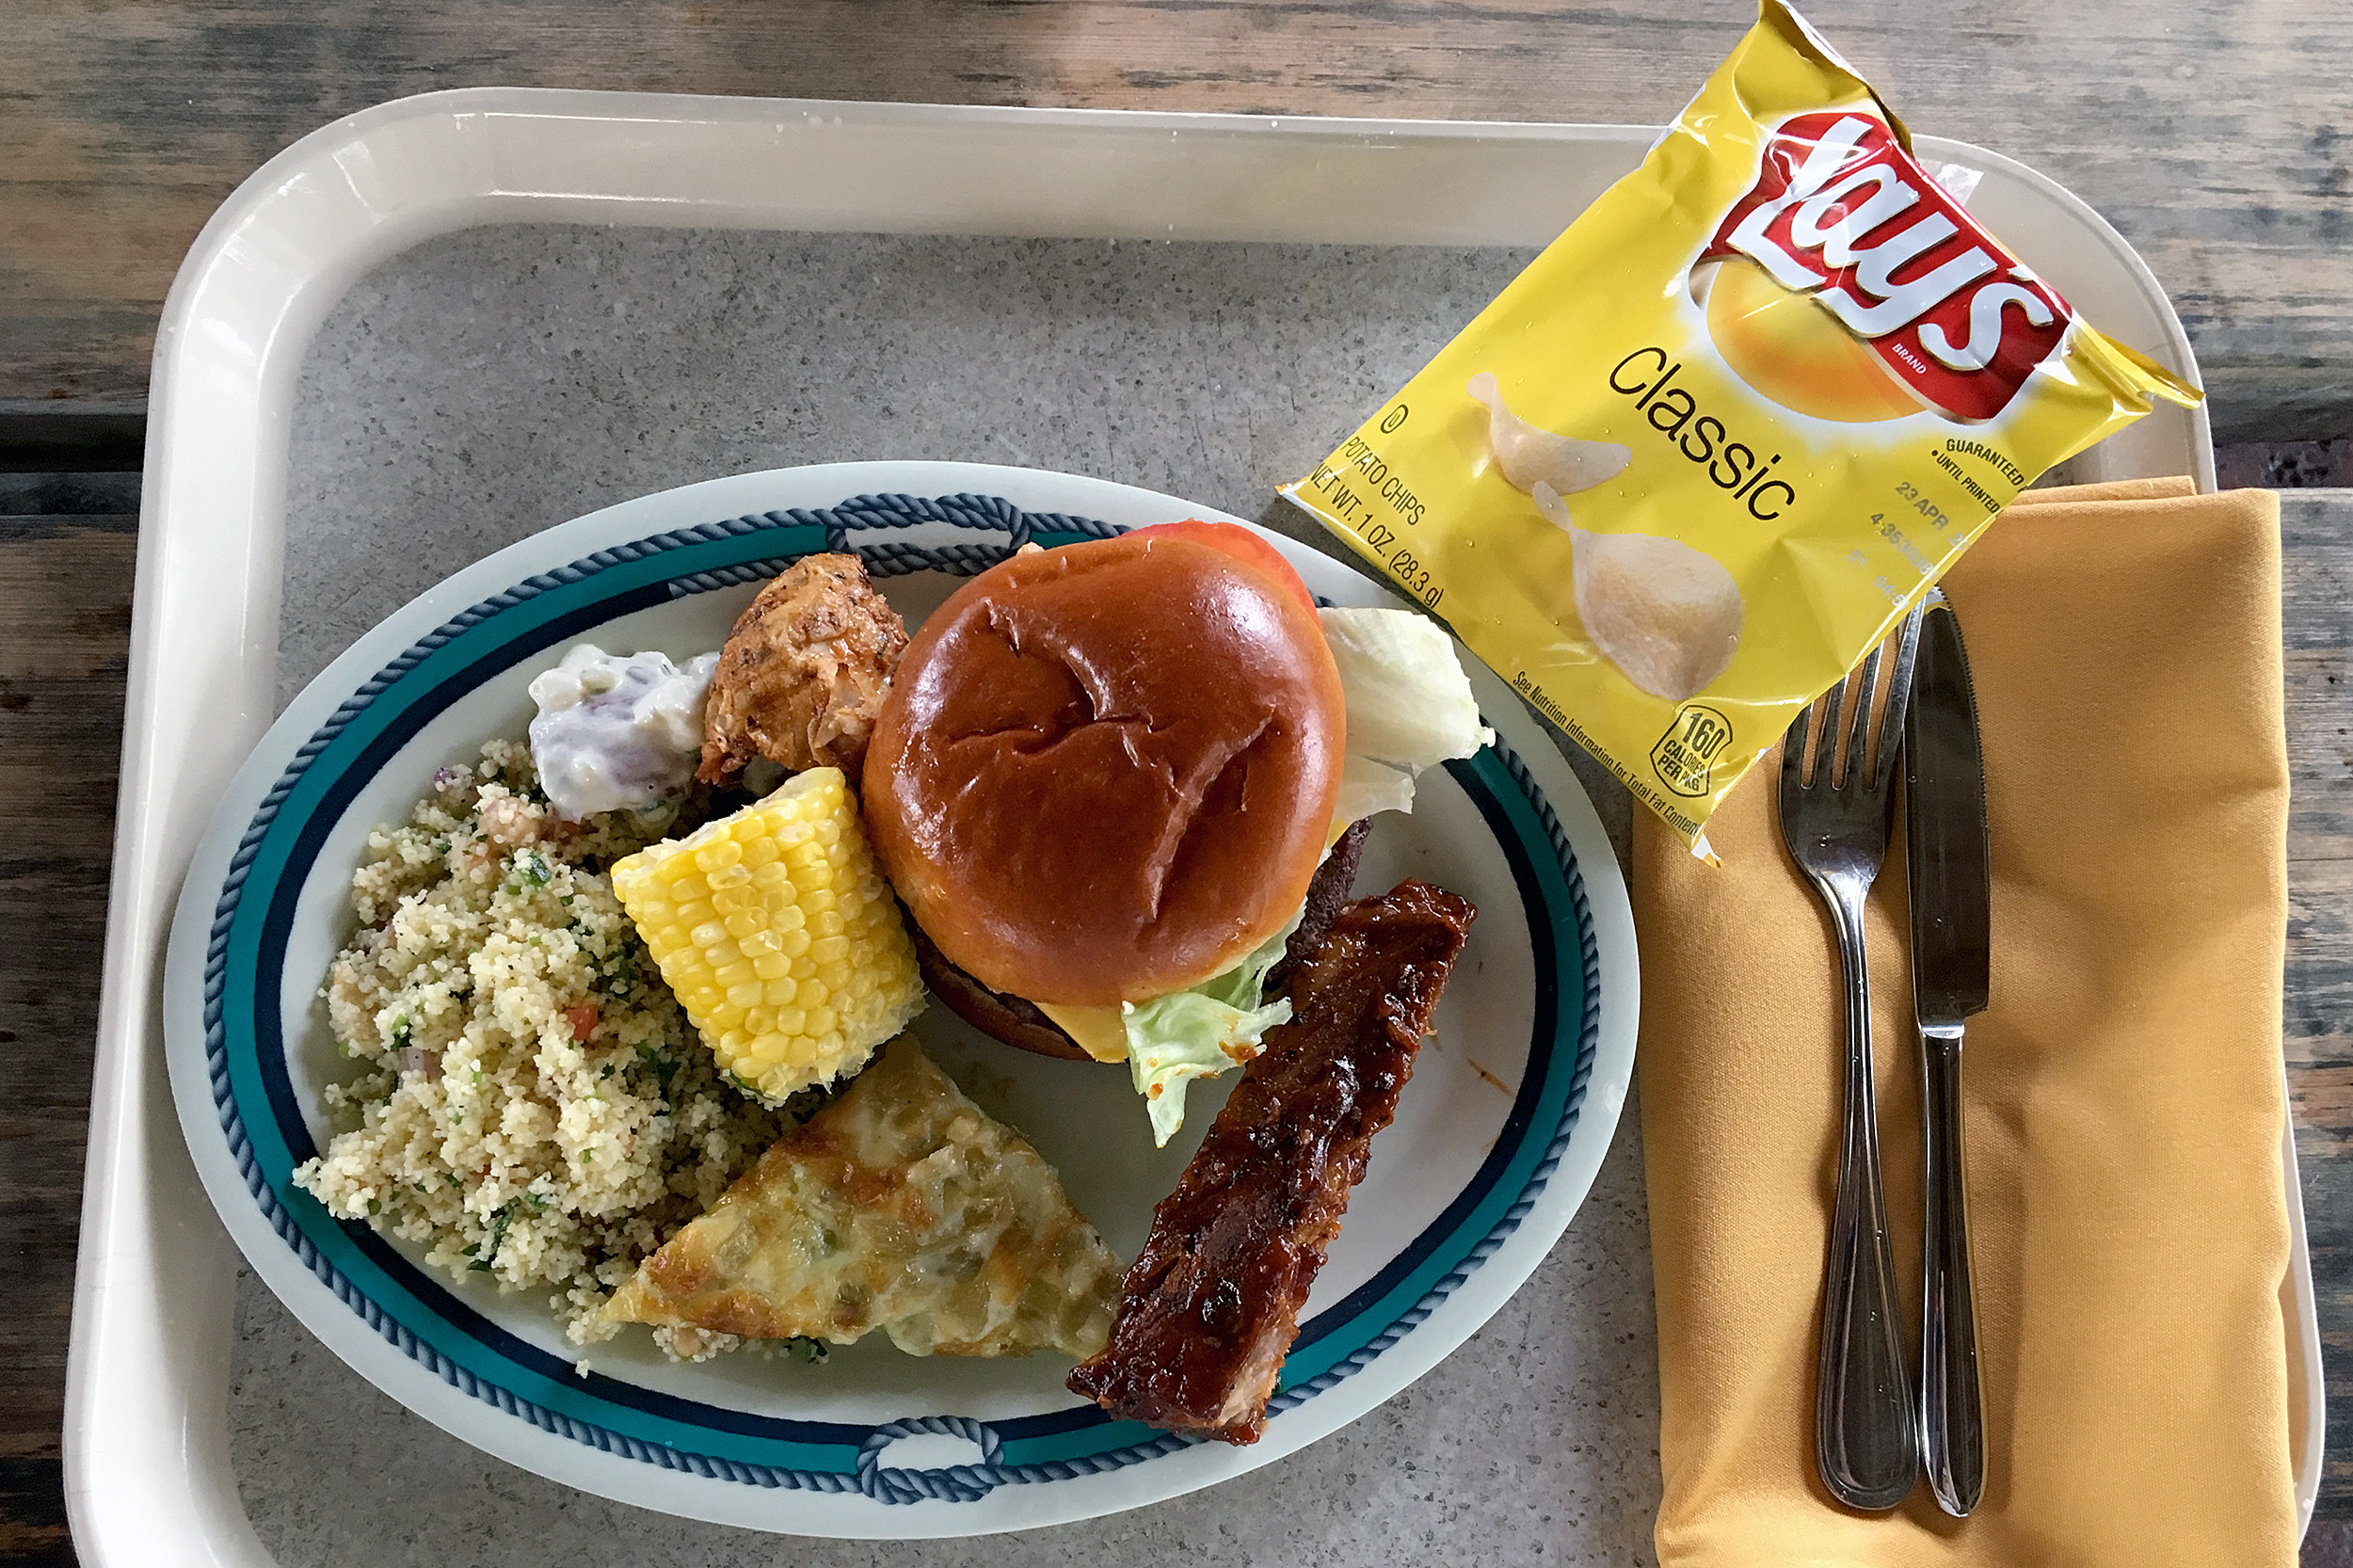 Castaway Cay Lunch Cookies BBQ